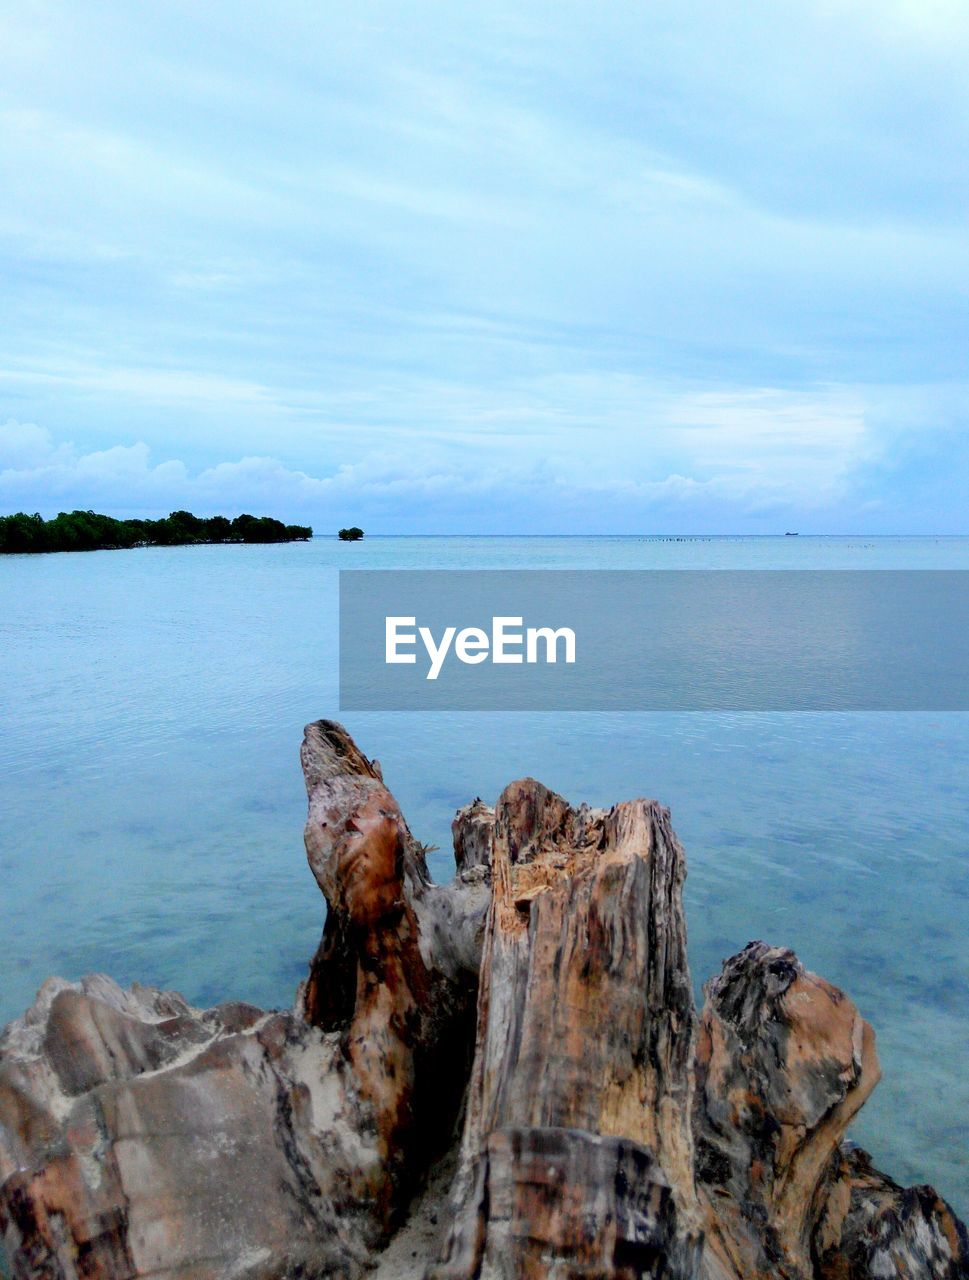 sea, sky, tranquil scene, tranquility, scenics, nature, water, horizon over water, beauty in nature, rock - object, outdoors, no people, cloud - sky, idyllic, day, close-up